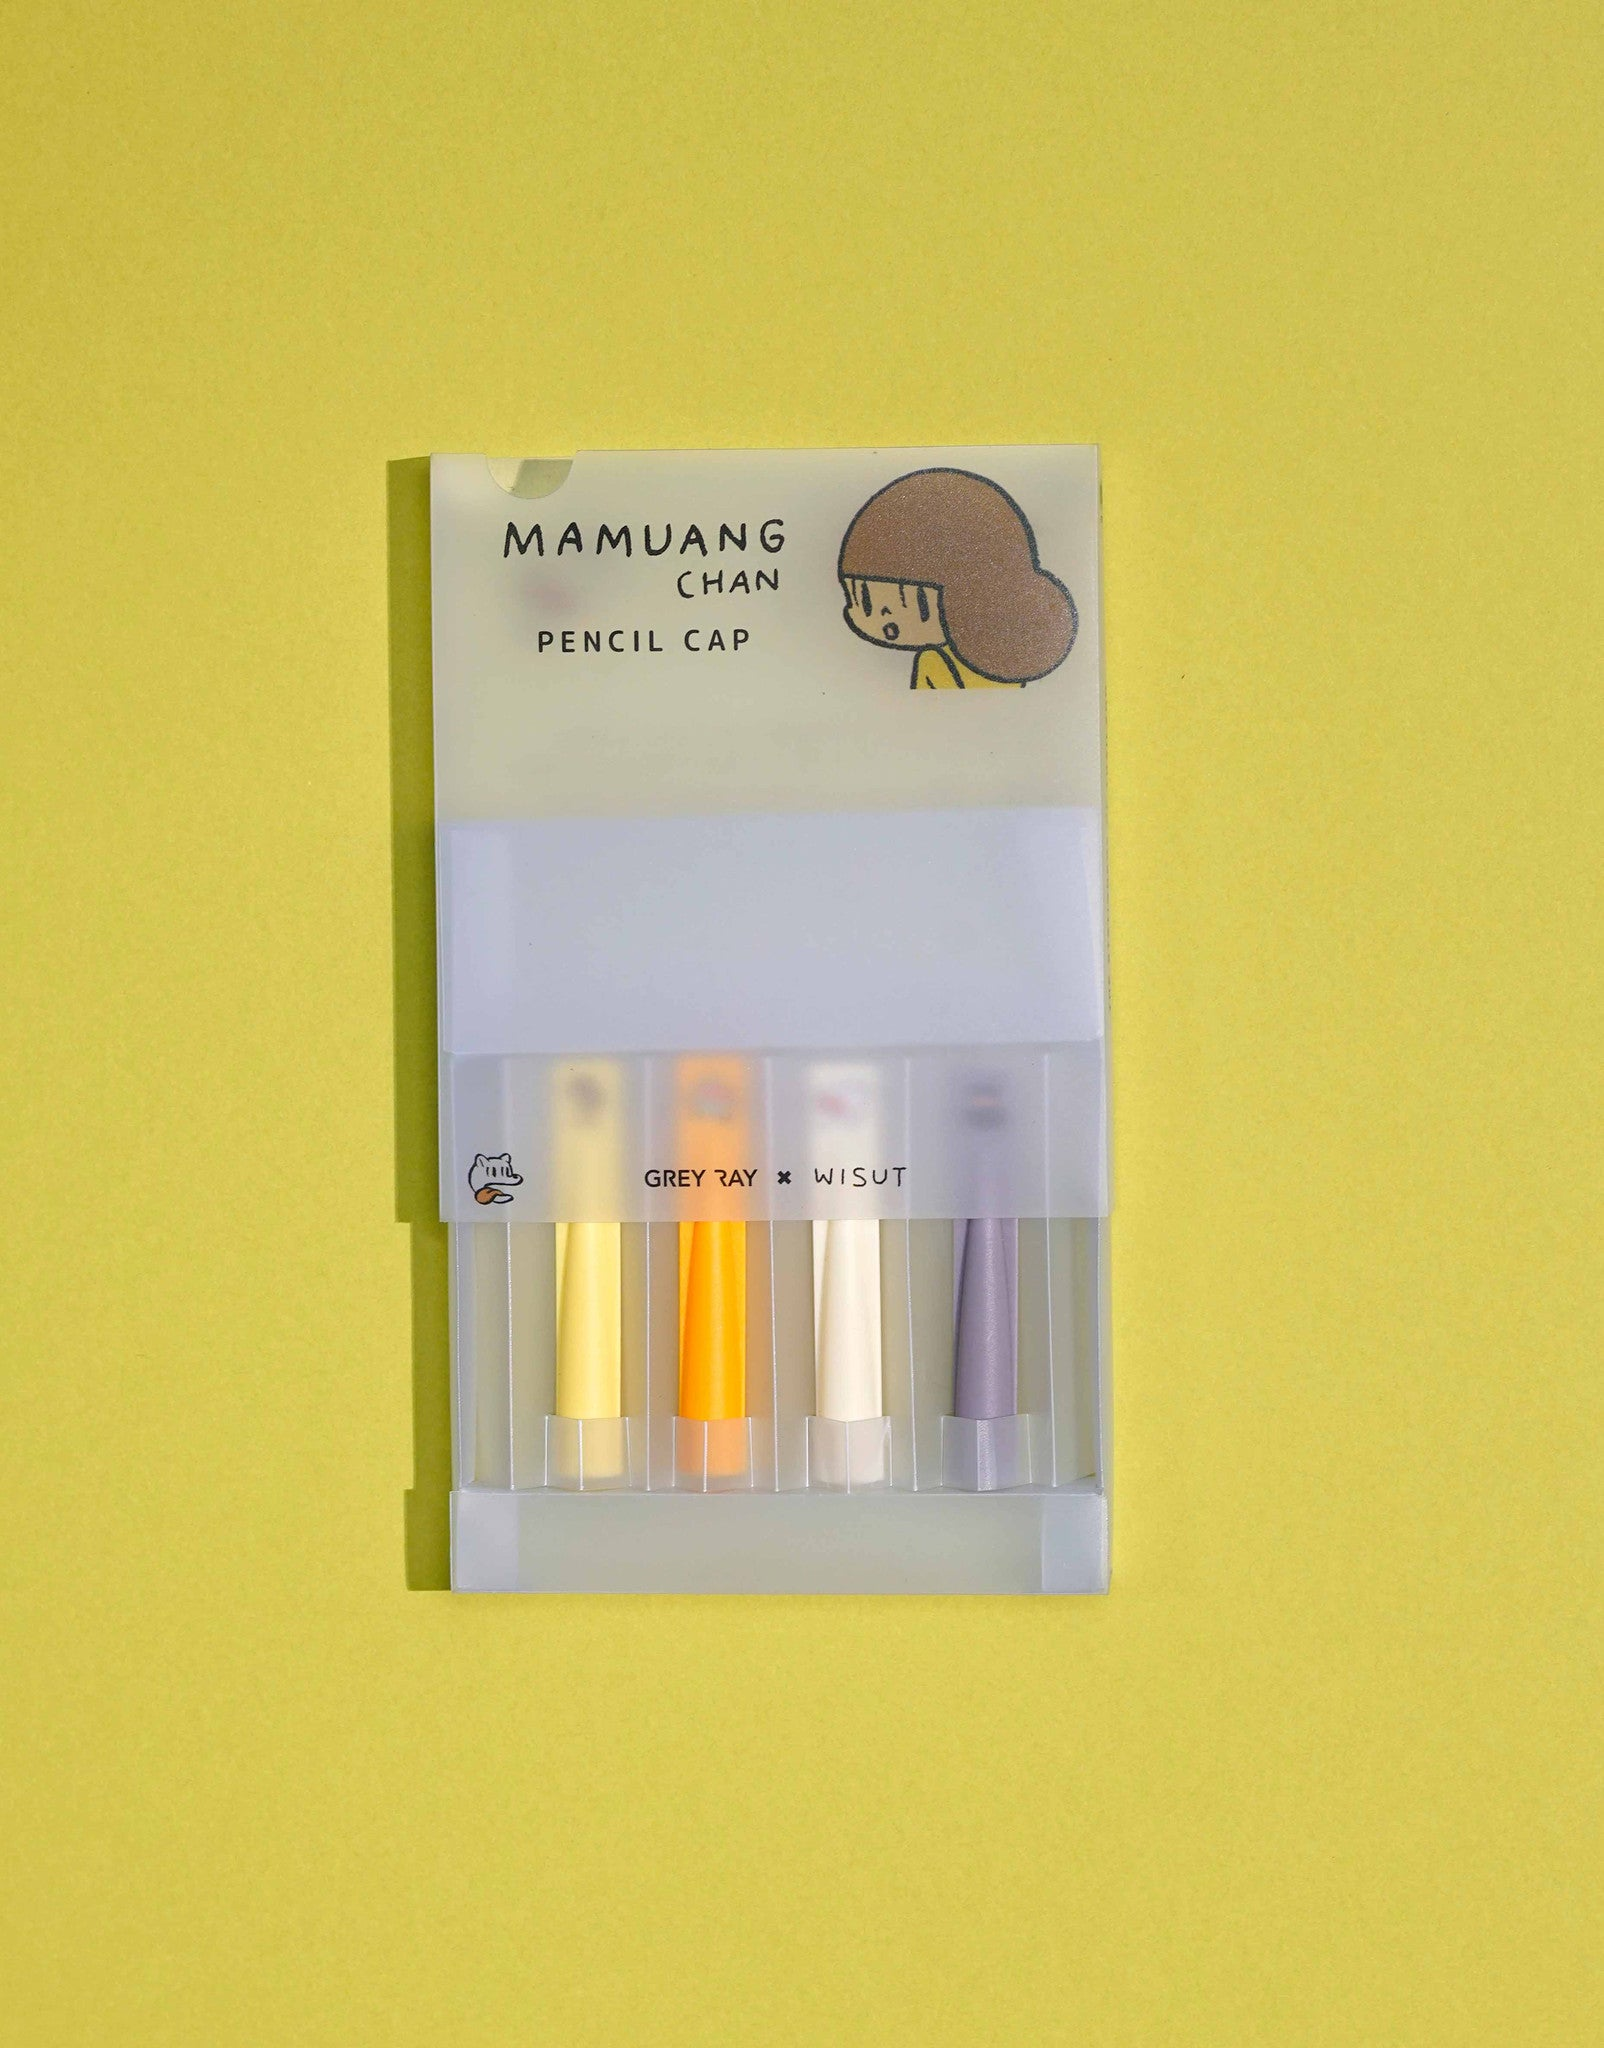 Grey Ray x Mamuang Pencil Cap